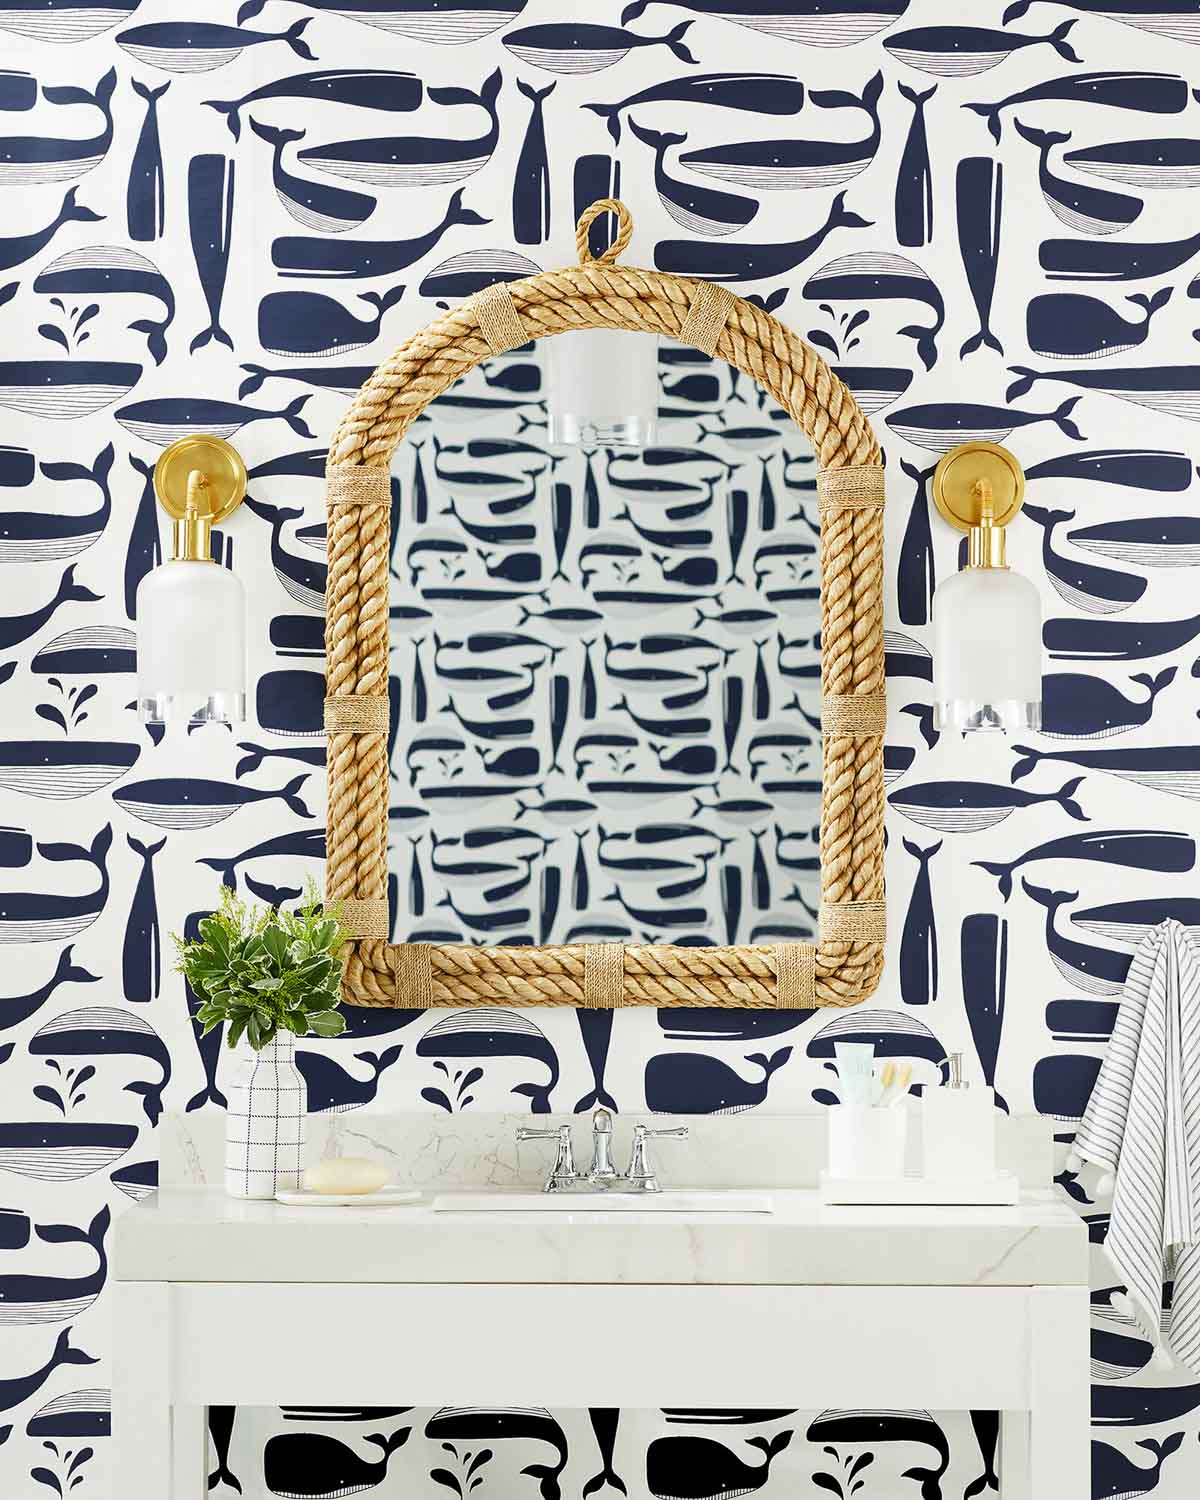 Powder room mirrors - great tips on choosing the right size!